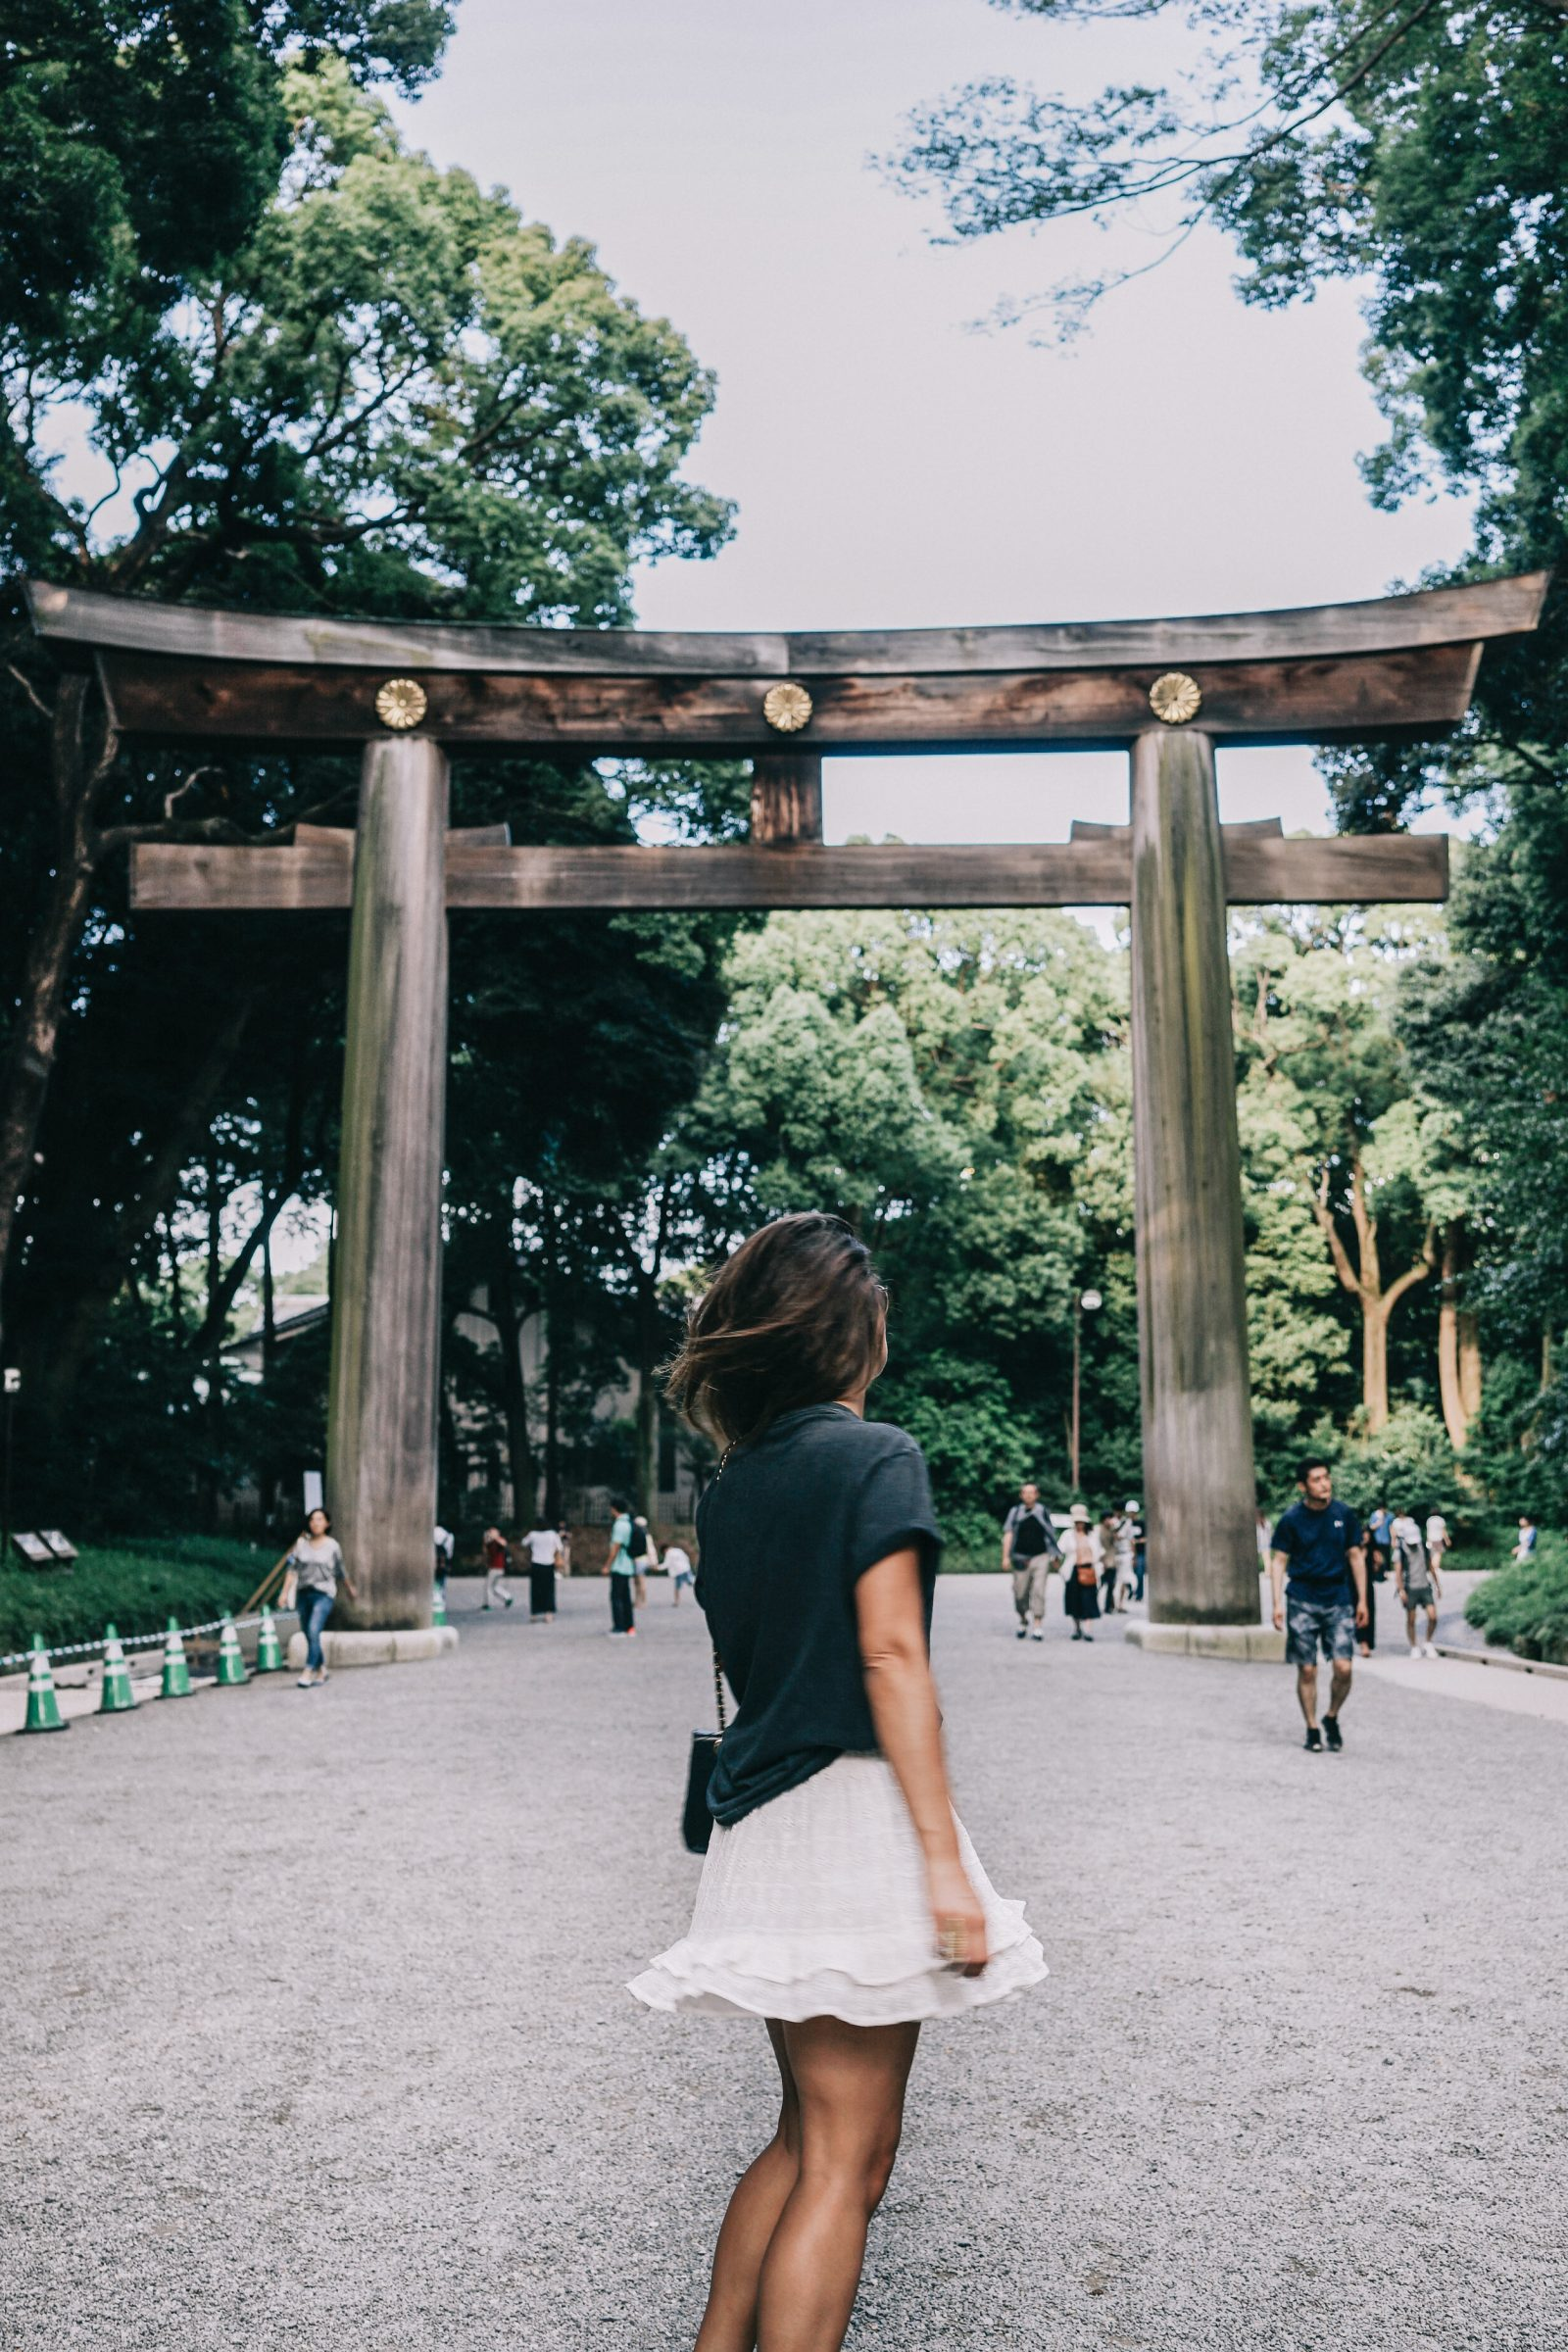 Tokyo_Travel_Guide-Outfit-Collage_Vintage-Street_Style-Top_Mettalica-Brandy_Melville-White_Skirt-Chanel_Vintage-Sneakers-63